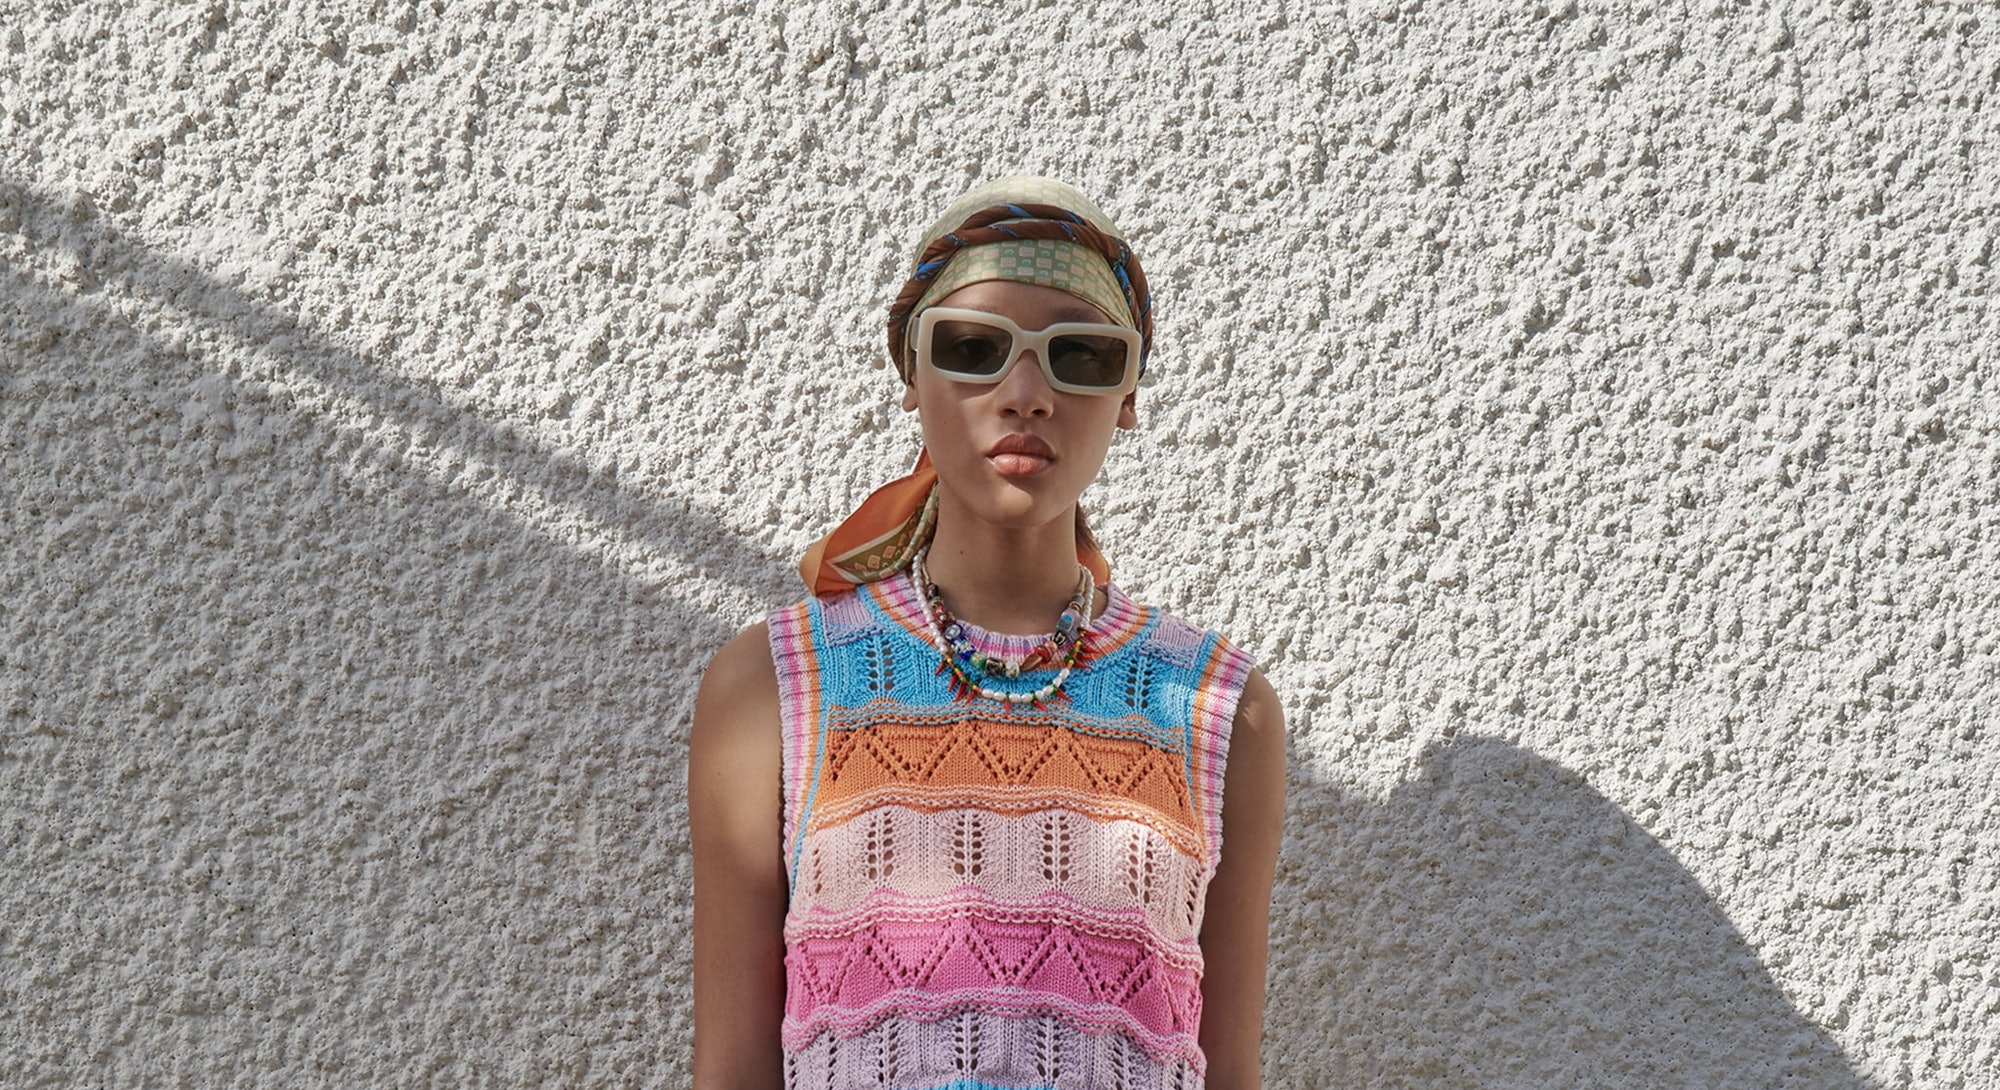 Model wearing Zara crochet knit top.